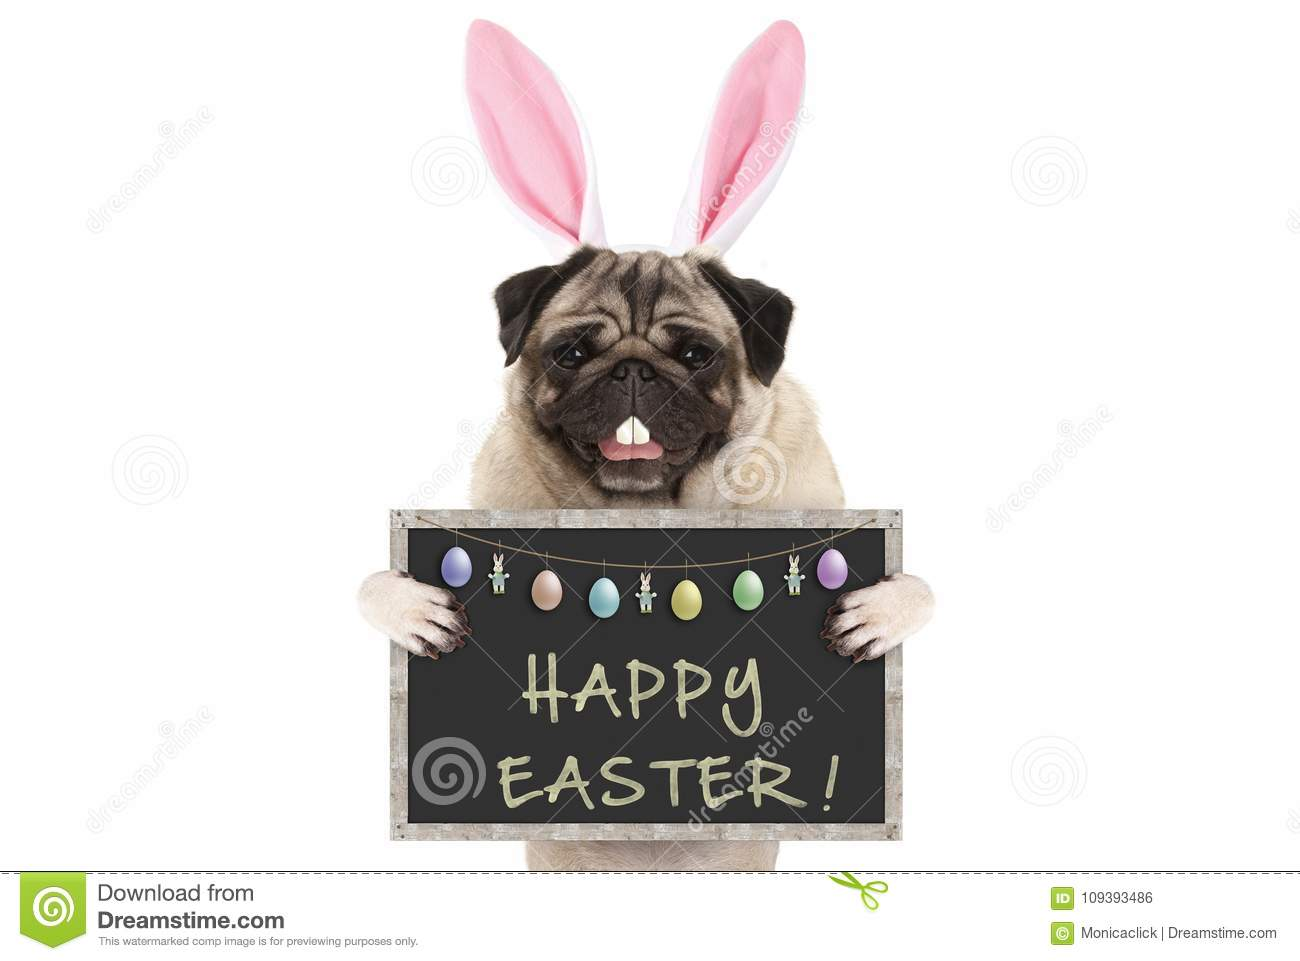 Easter bunny pug puppy dog with ears, eggs and blackboard with text happy easter